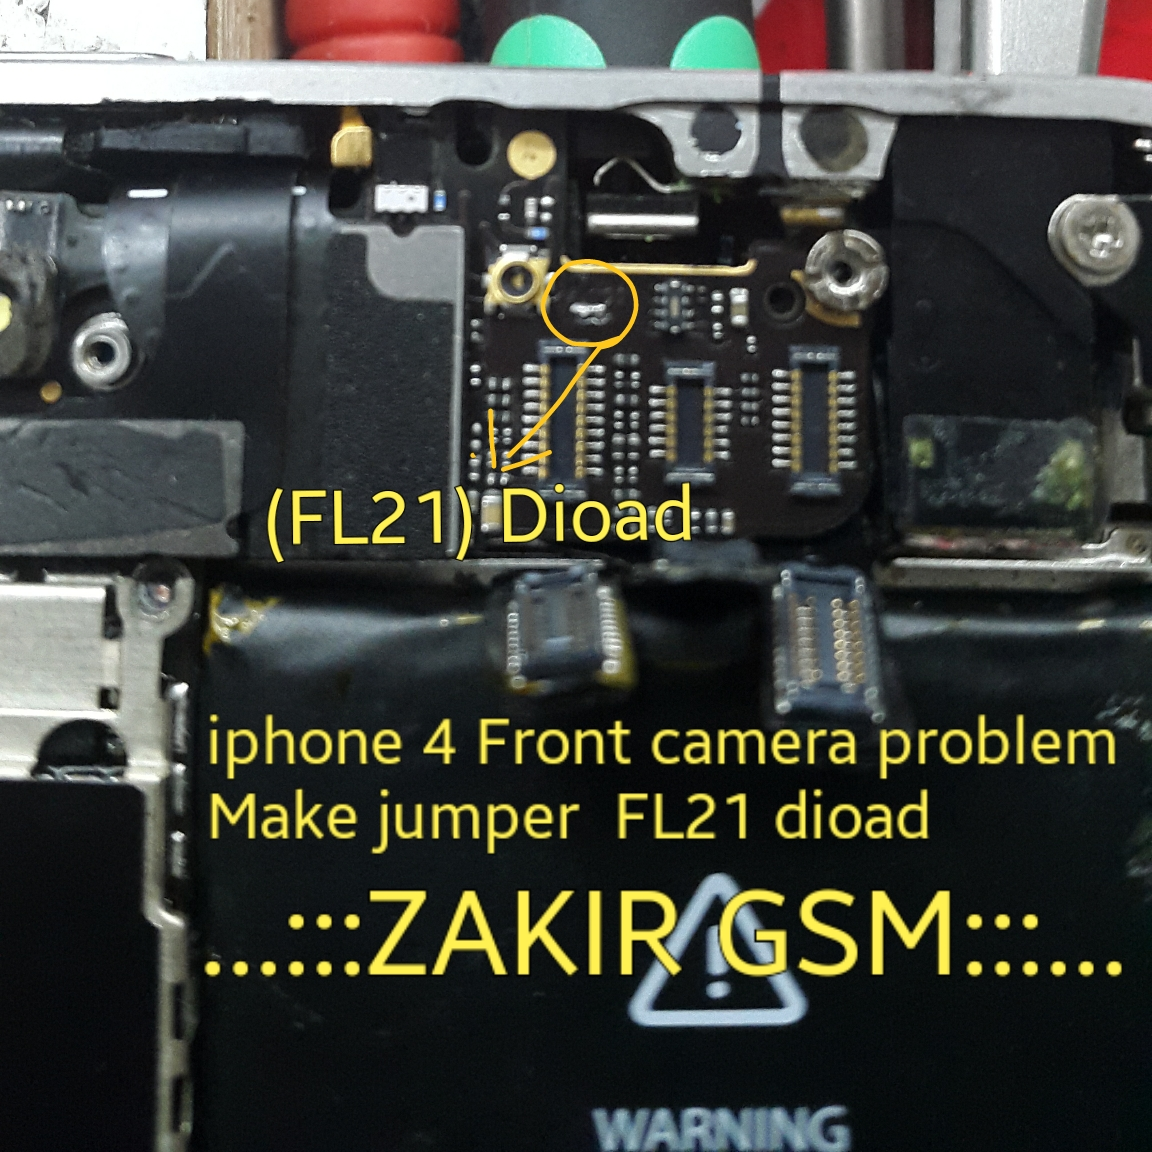 Camera freezes or shows black screen